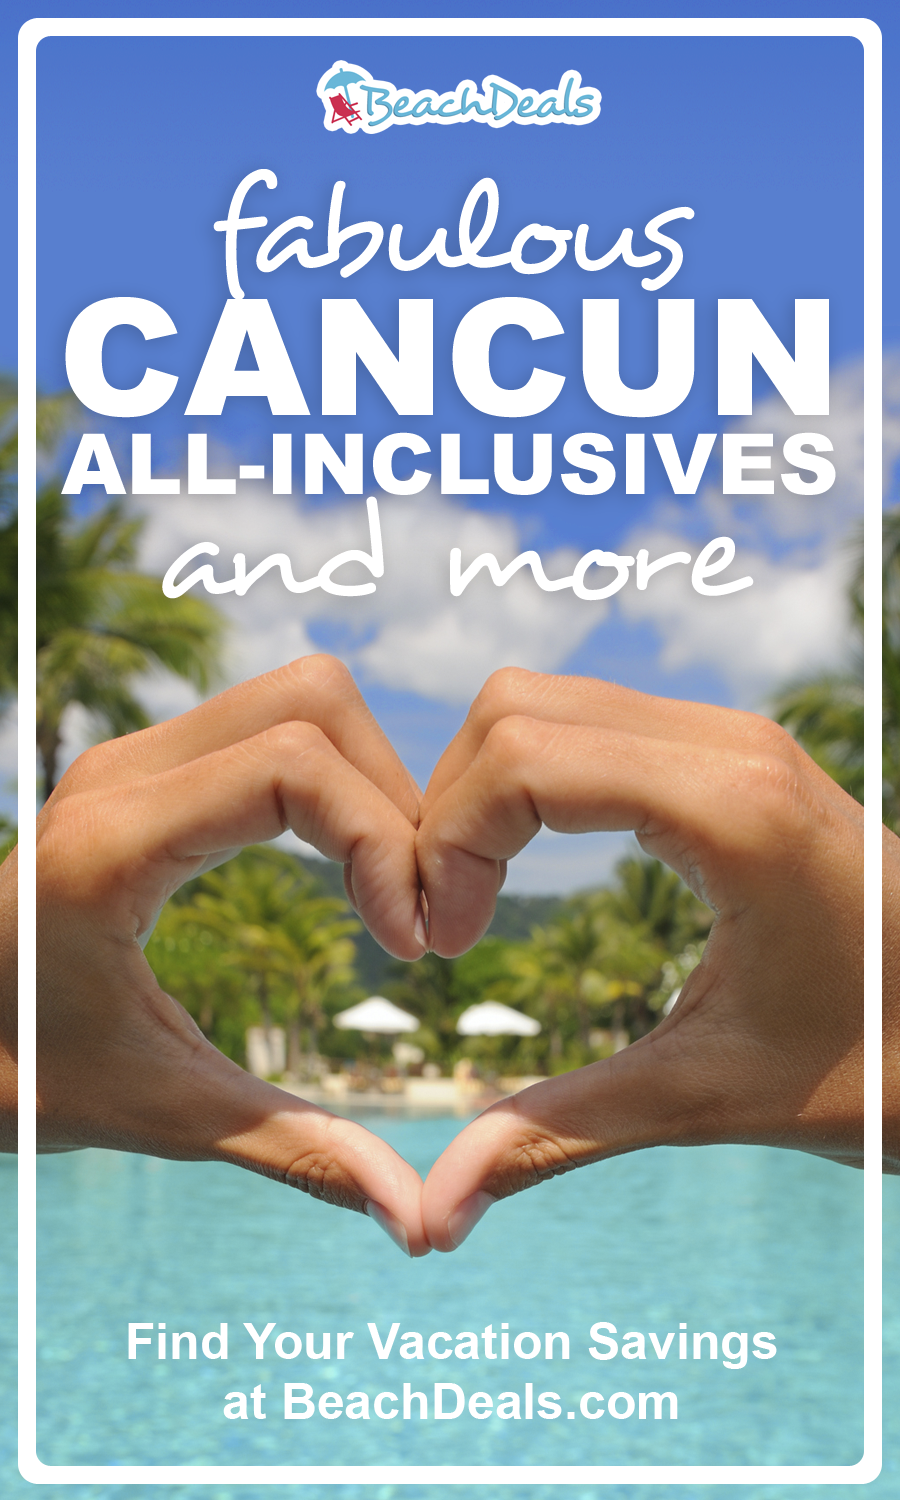 Find Deals On All-Inclusive Resorts & More!